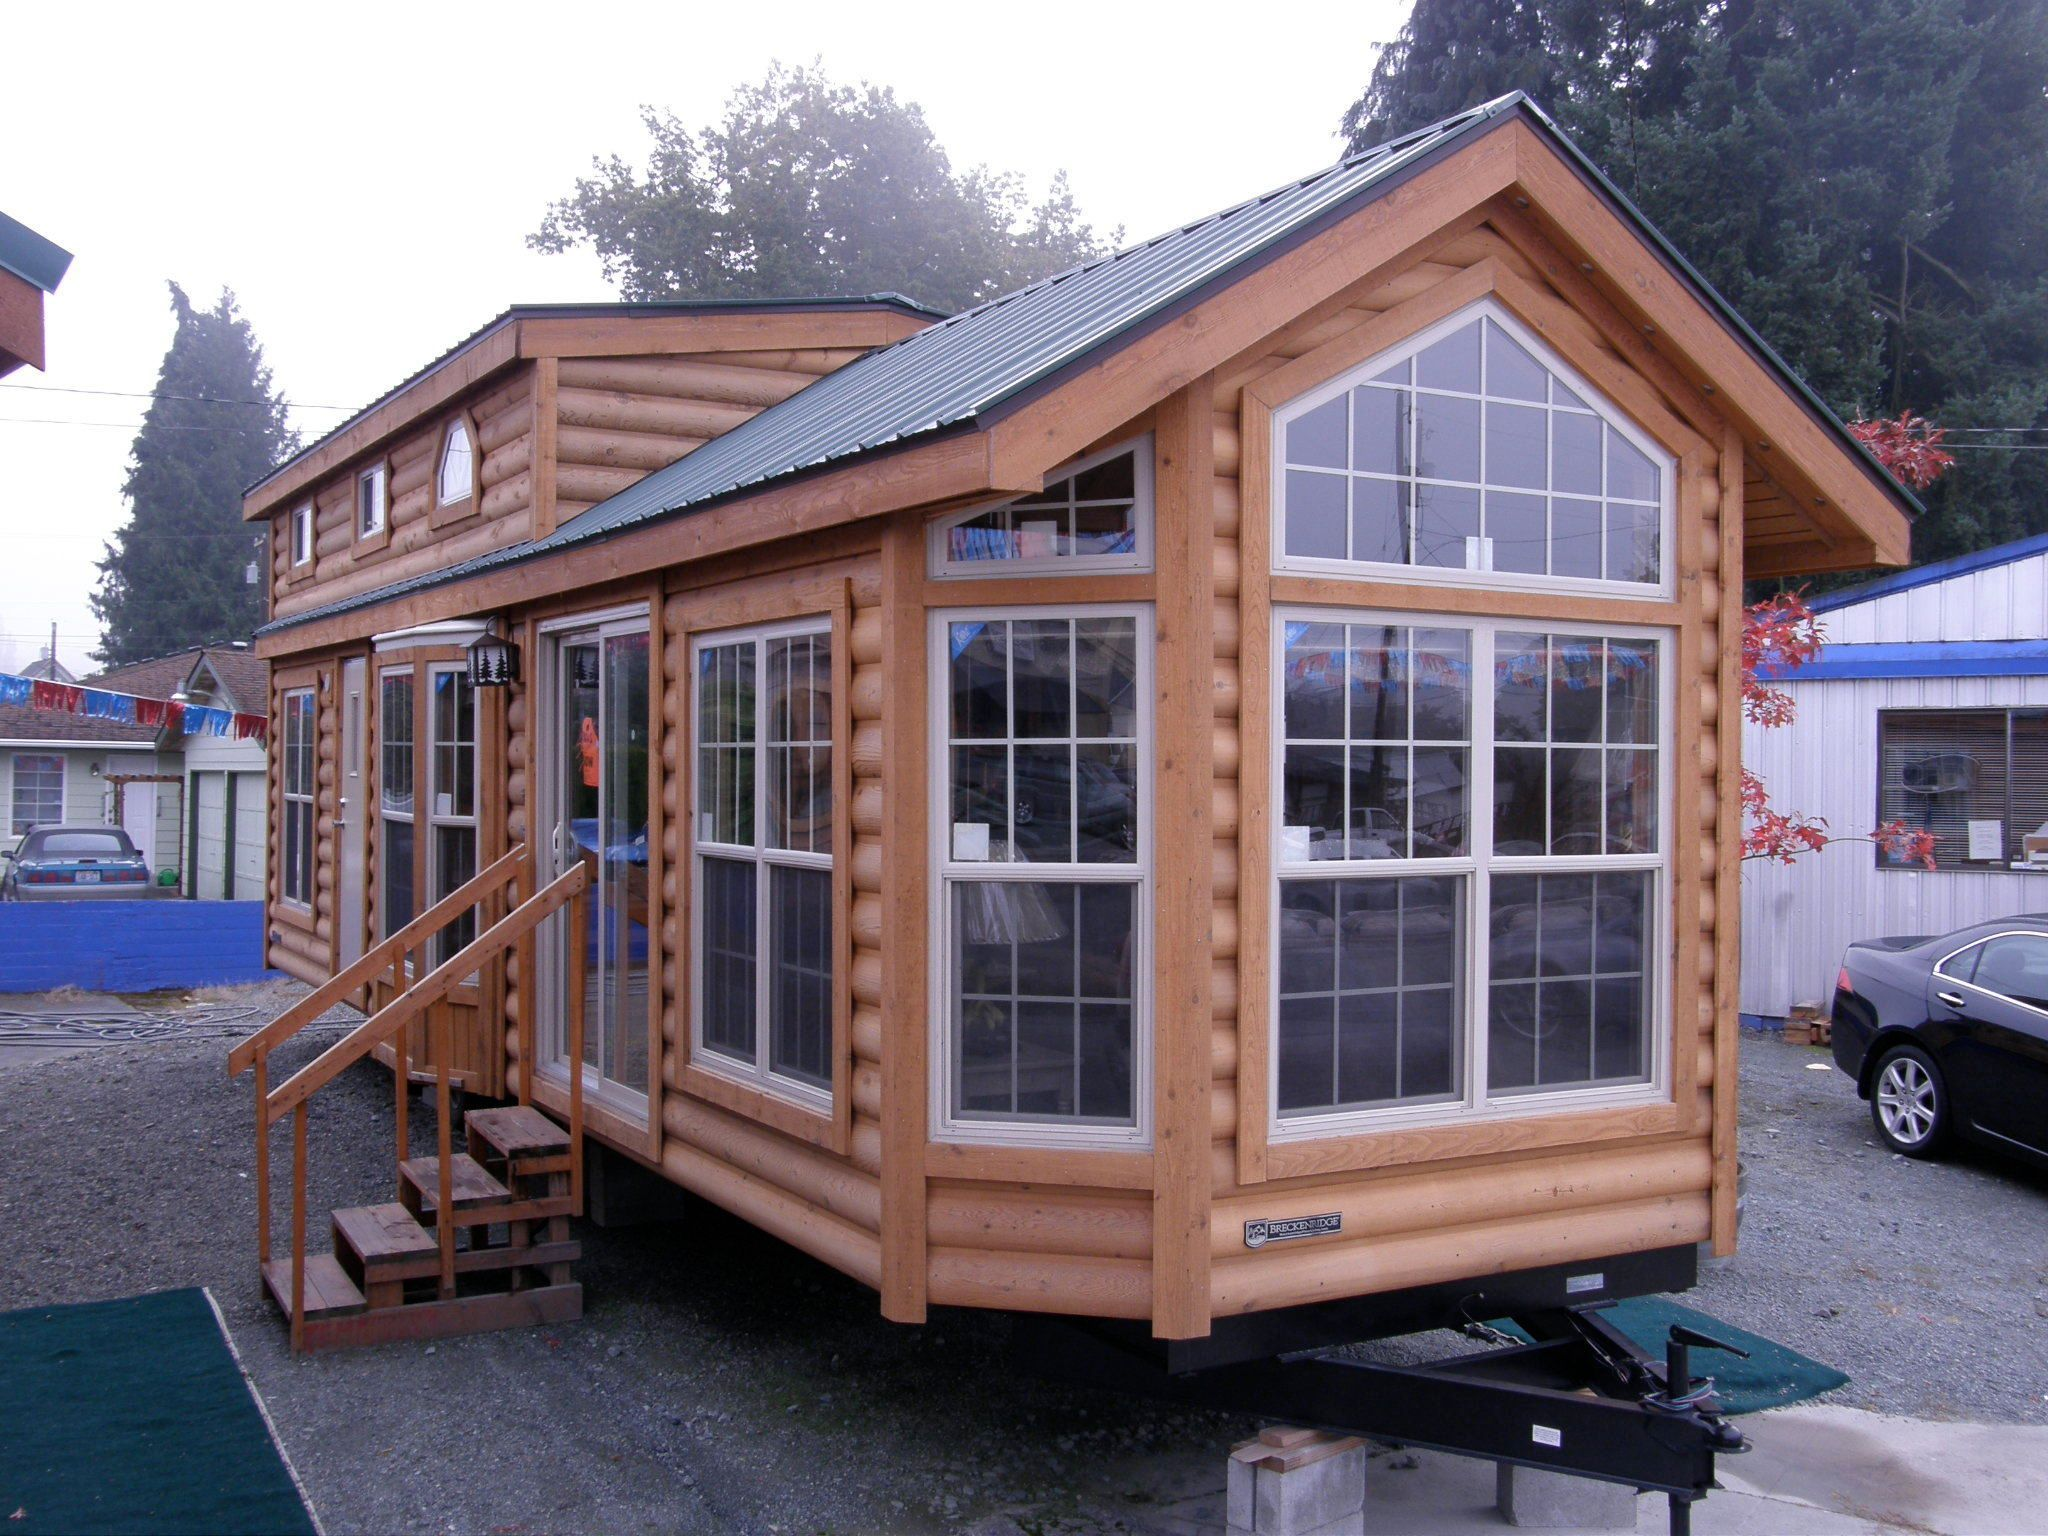 Holzhaus Auf Rädern Photos Tiny House Seattle Wa Meetup Cabins And Tiny